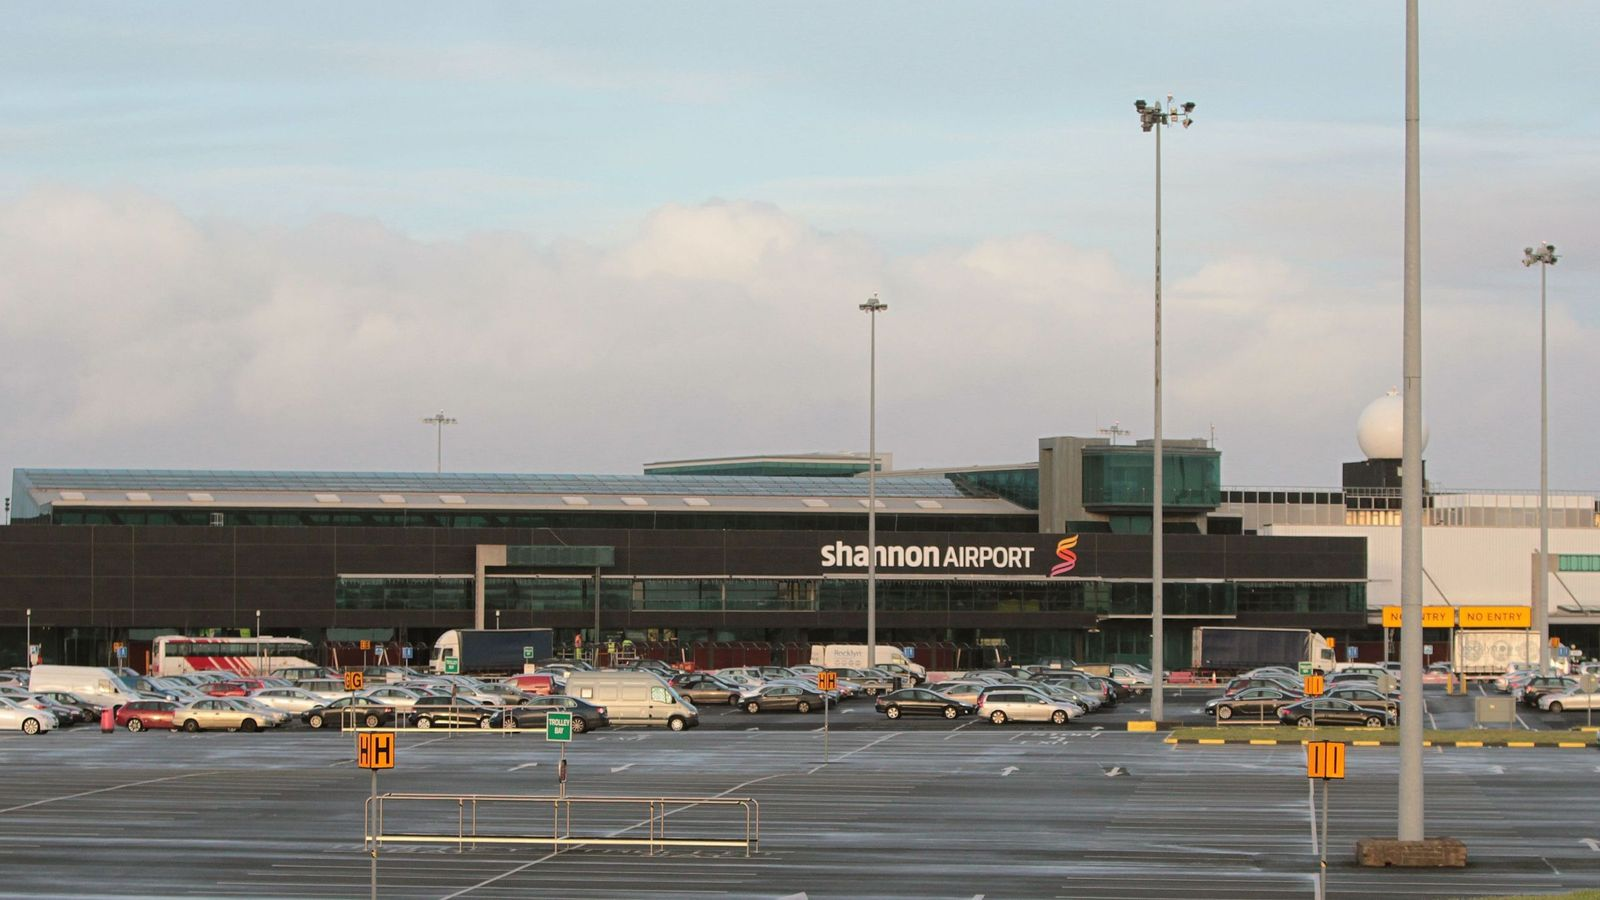 Flights suspended at Shannon airport after emergency 'incident'